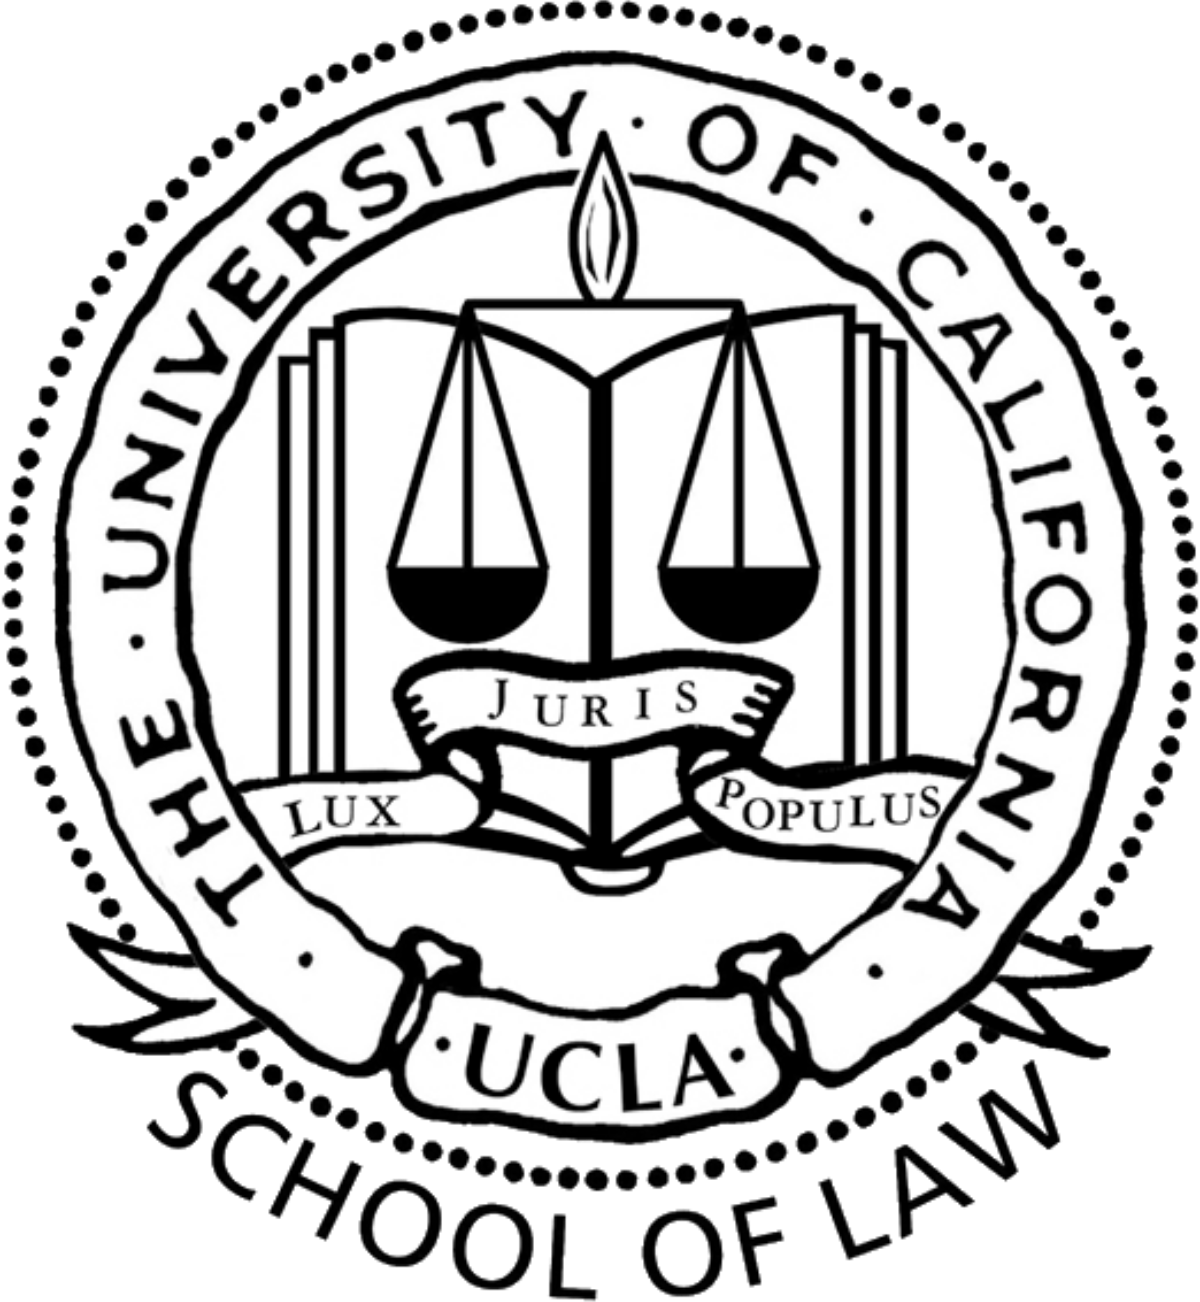 Pachuca drawing chicana. Ucla school of law